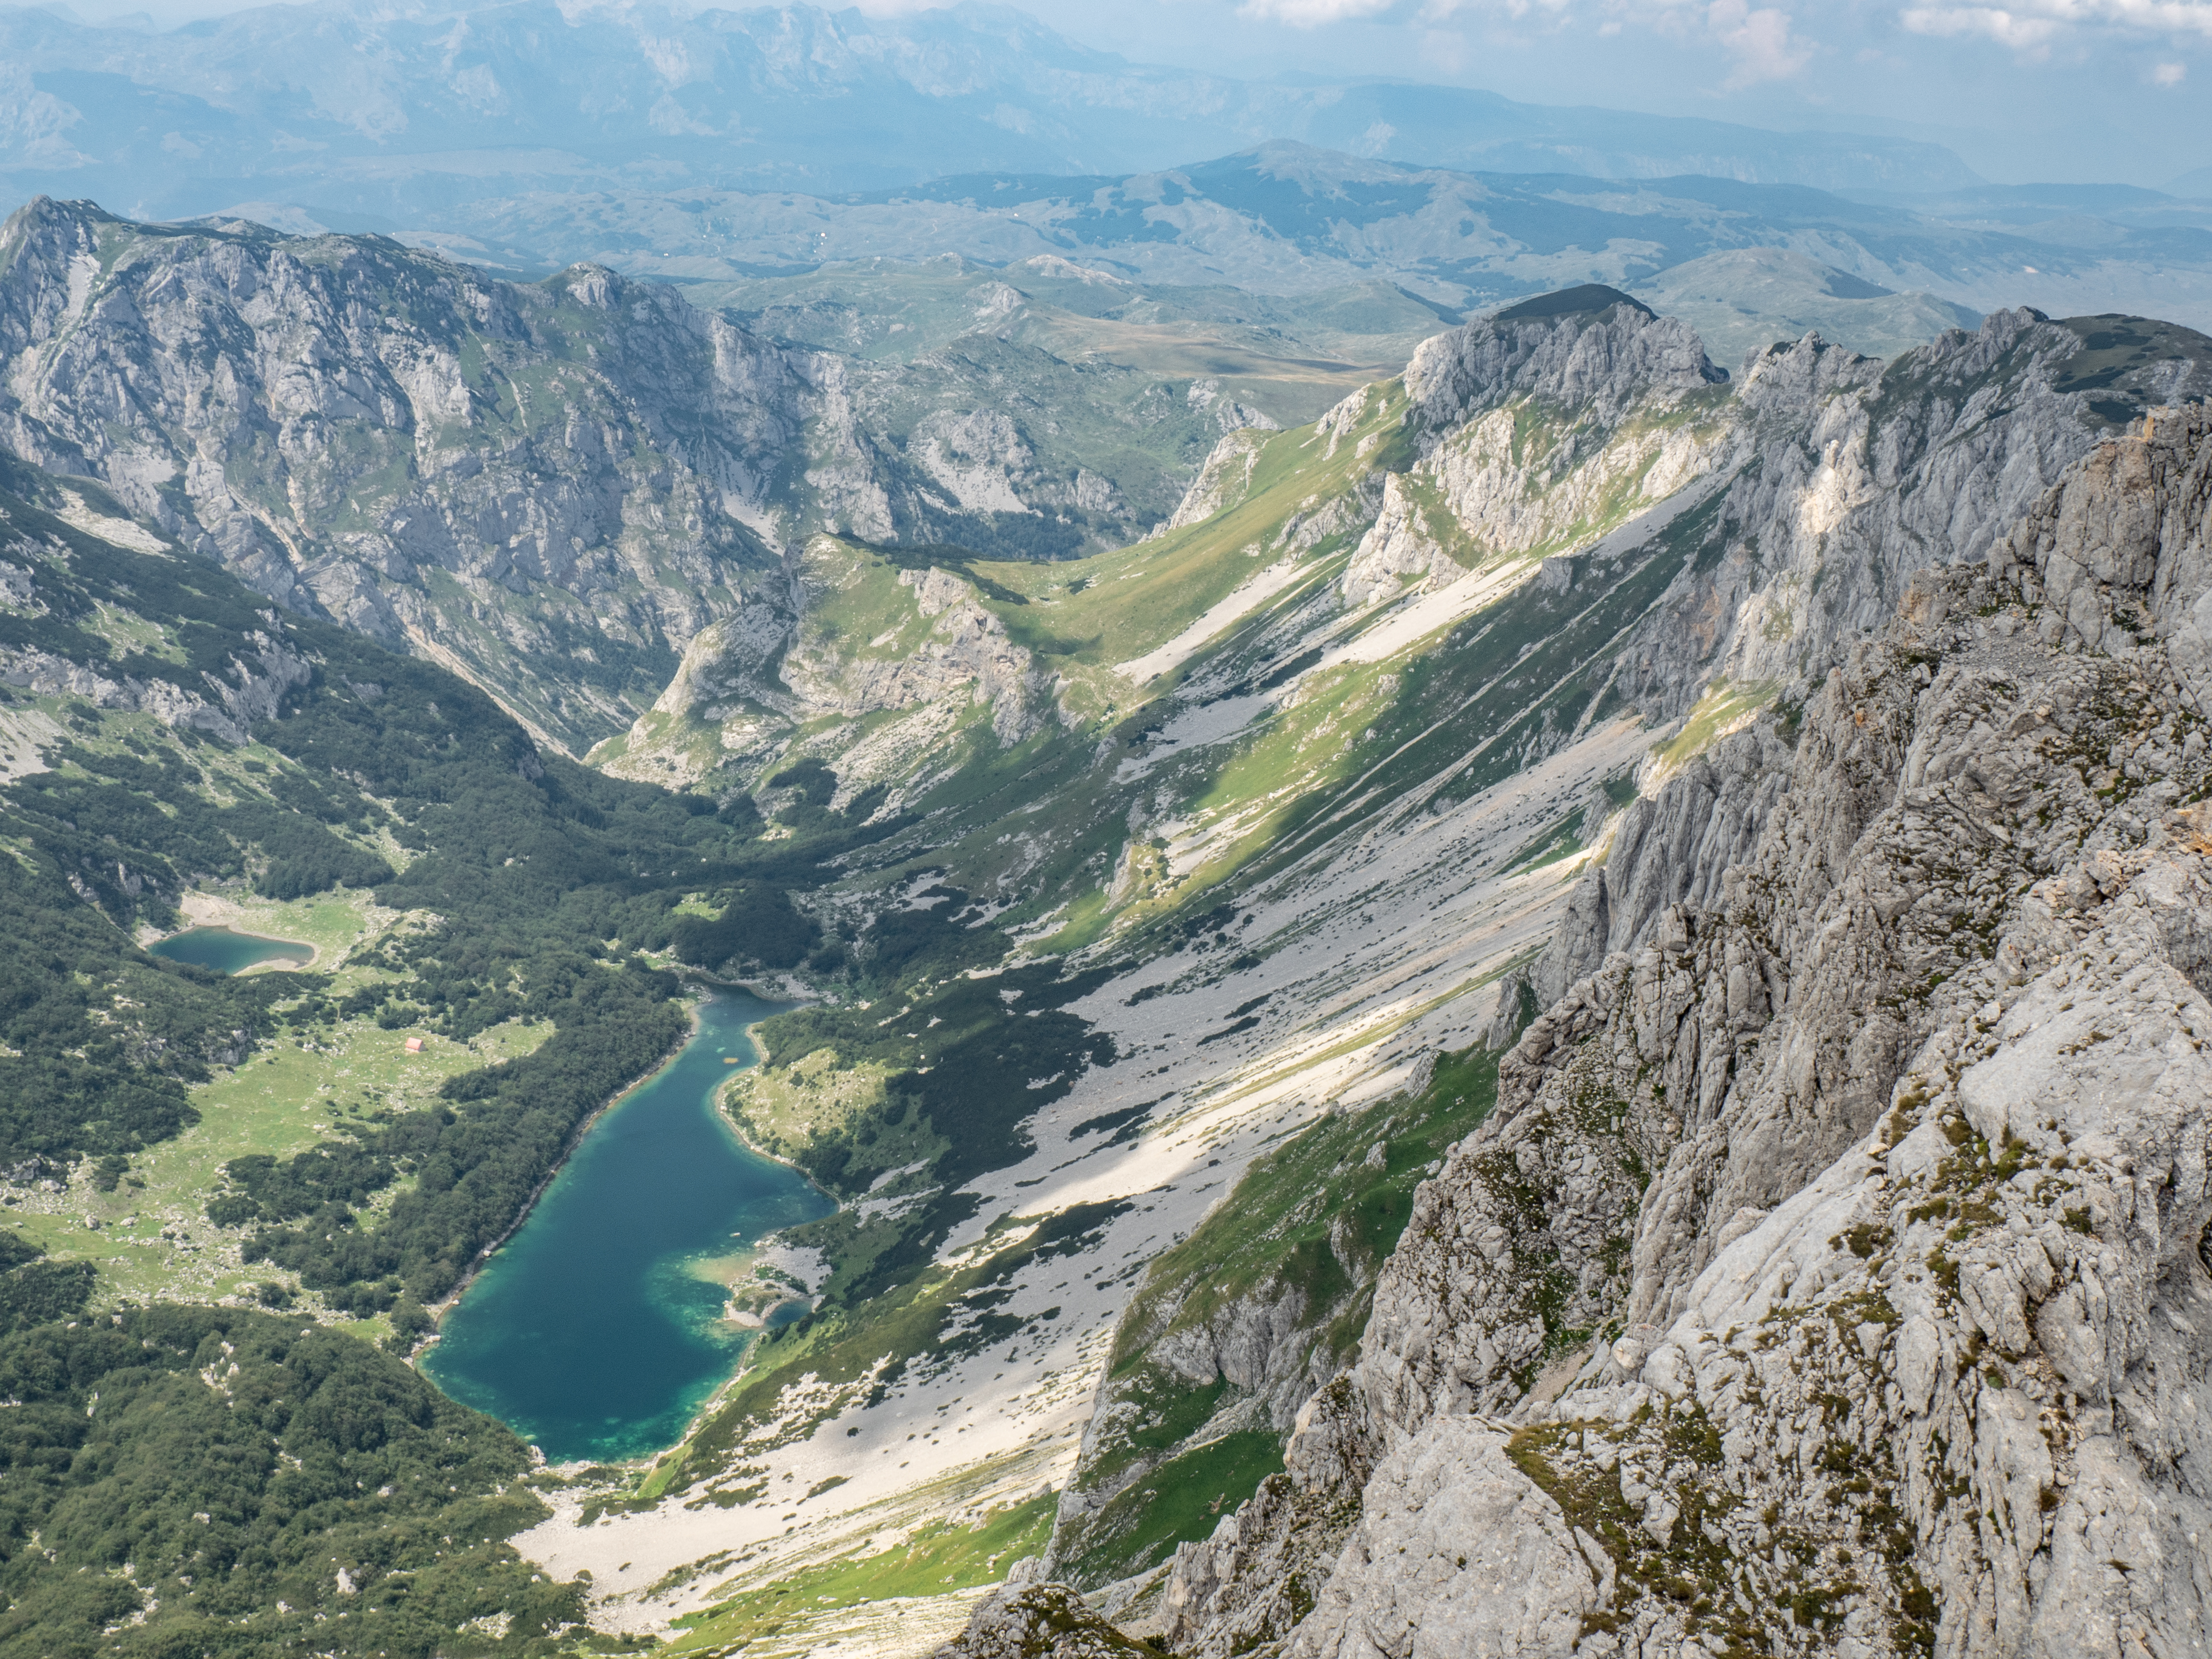 These 50 Photos Will Make You Want to Hike Via Dinarica RIGHT NOW